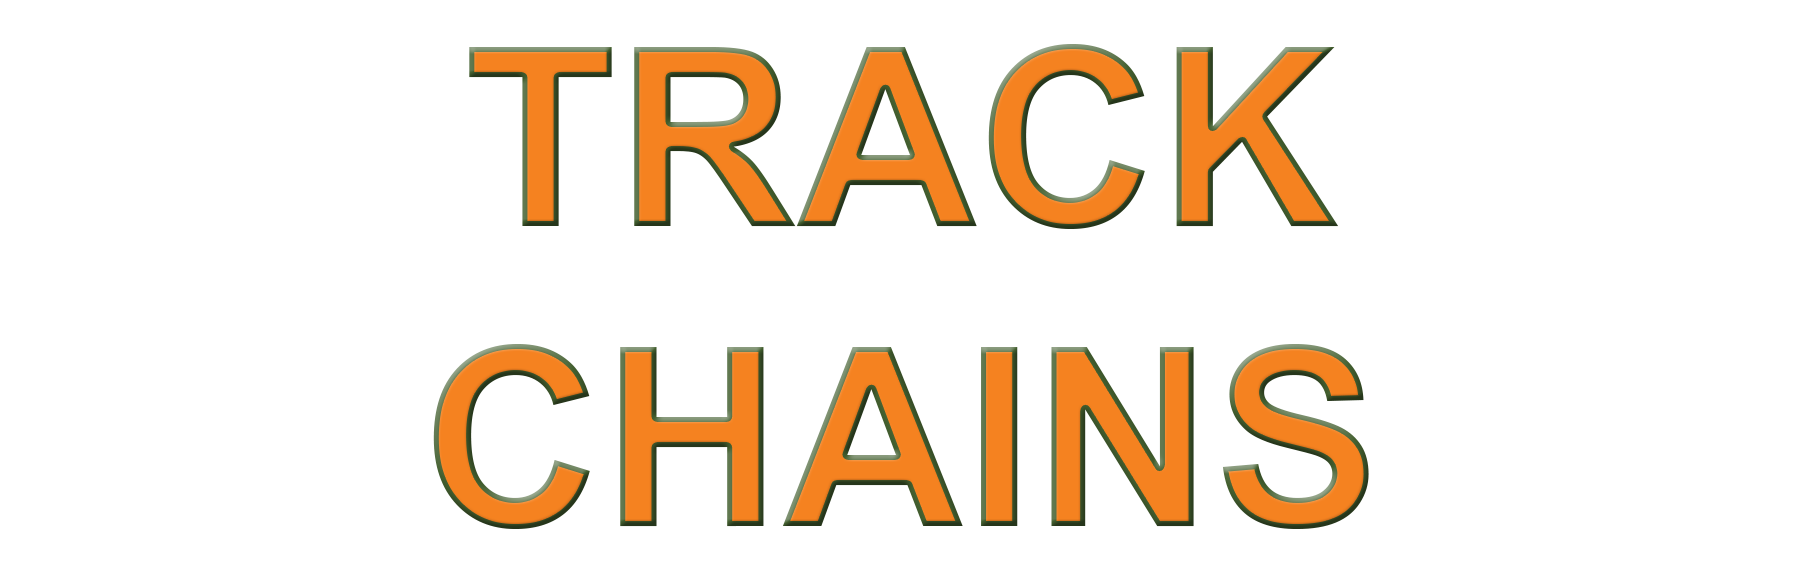 Track Chains